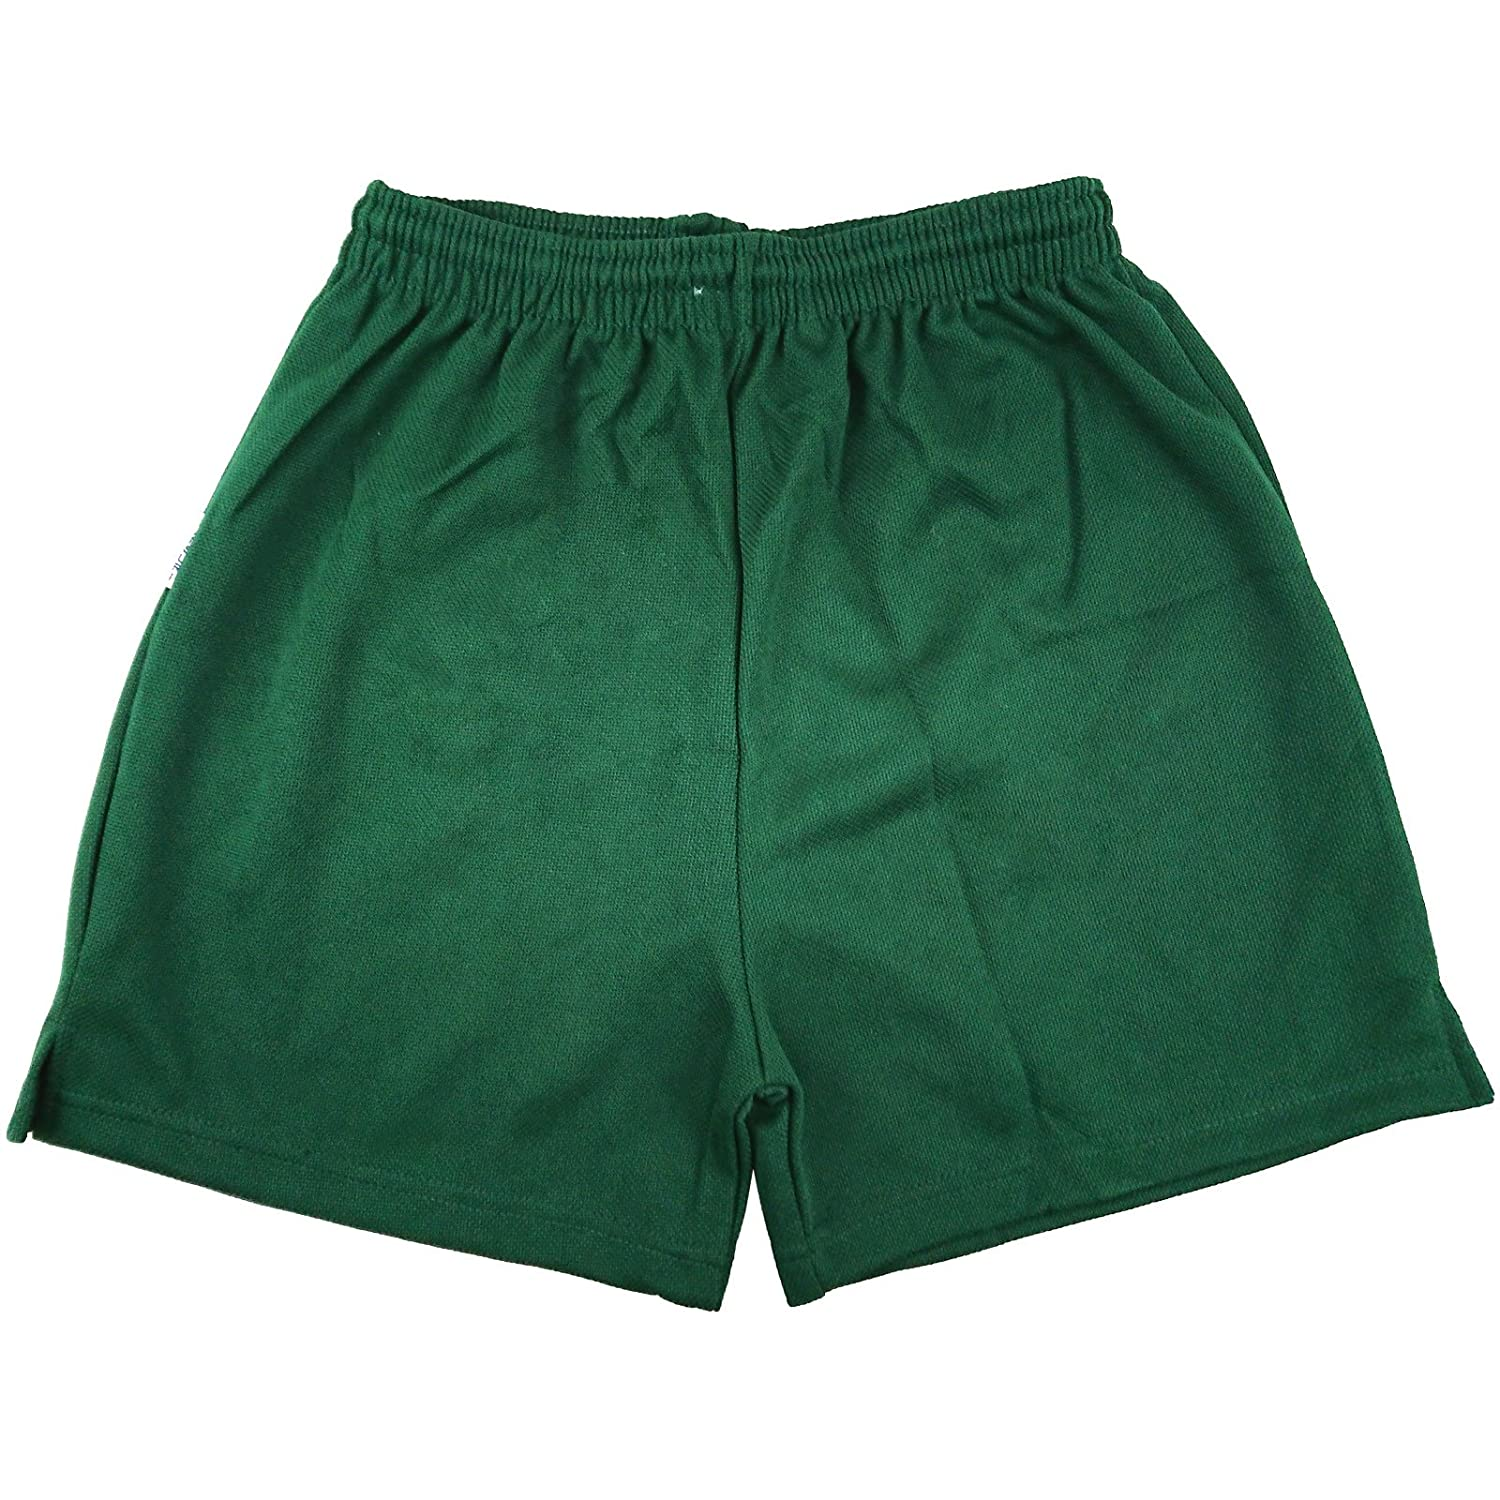 Mens Boys Girls Unisex Mesh Shorts Gym Shorts Sports Football Games PE Shorts School PE Shorts Green